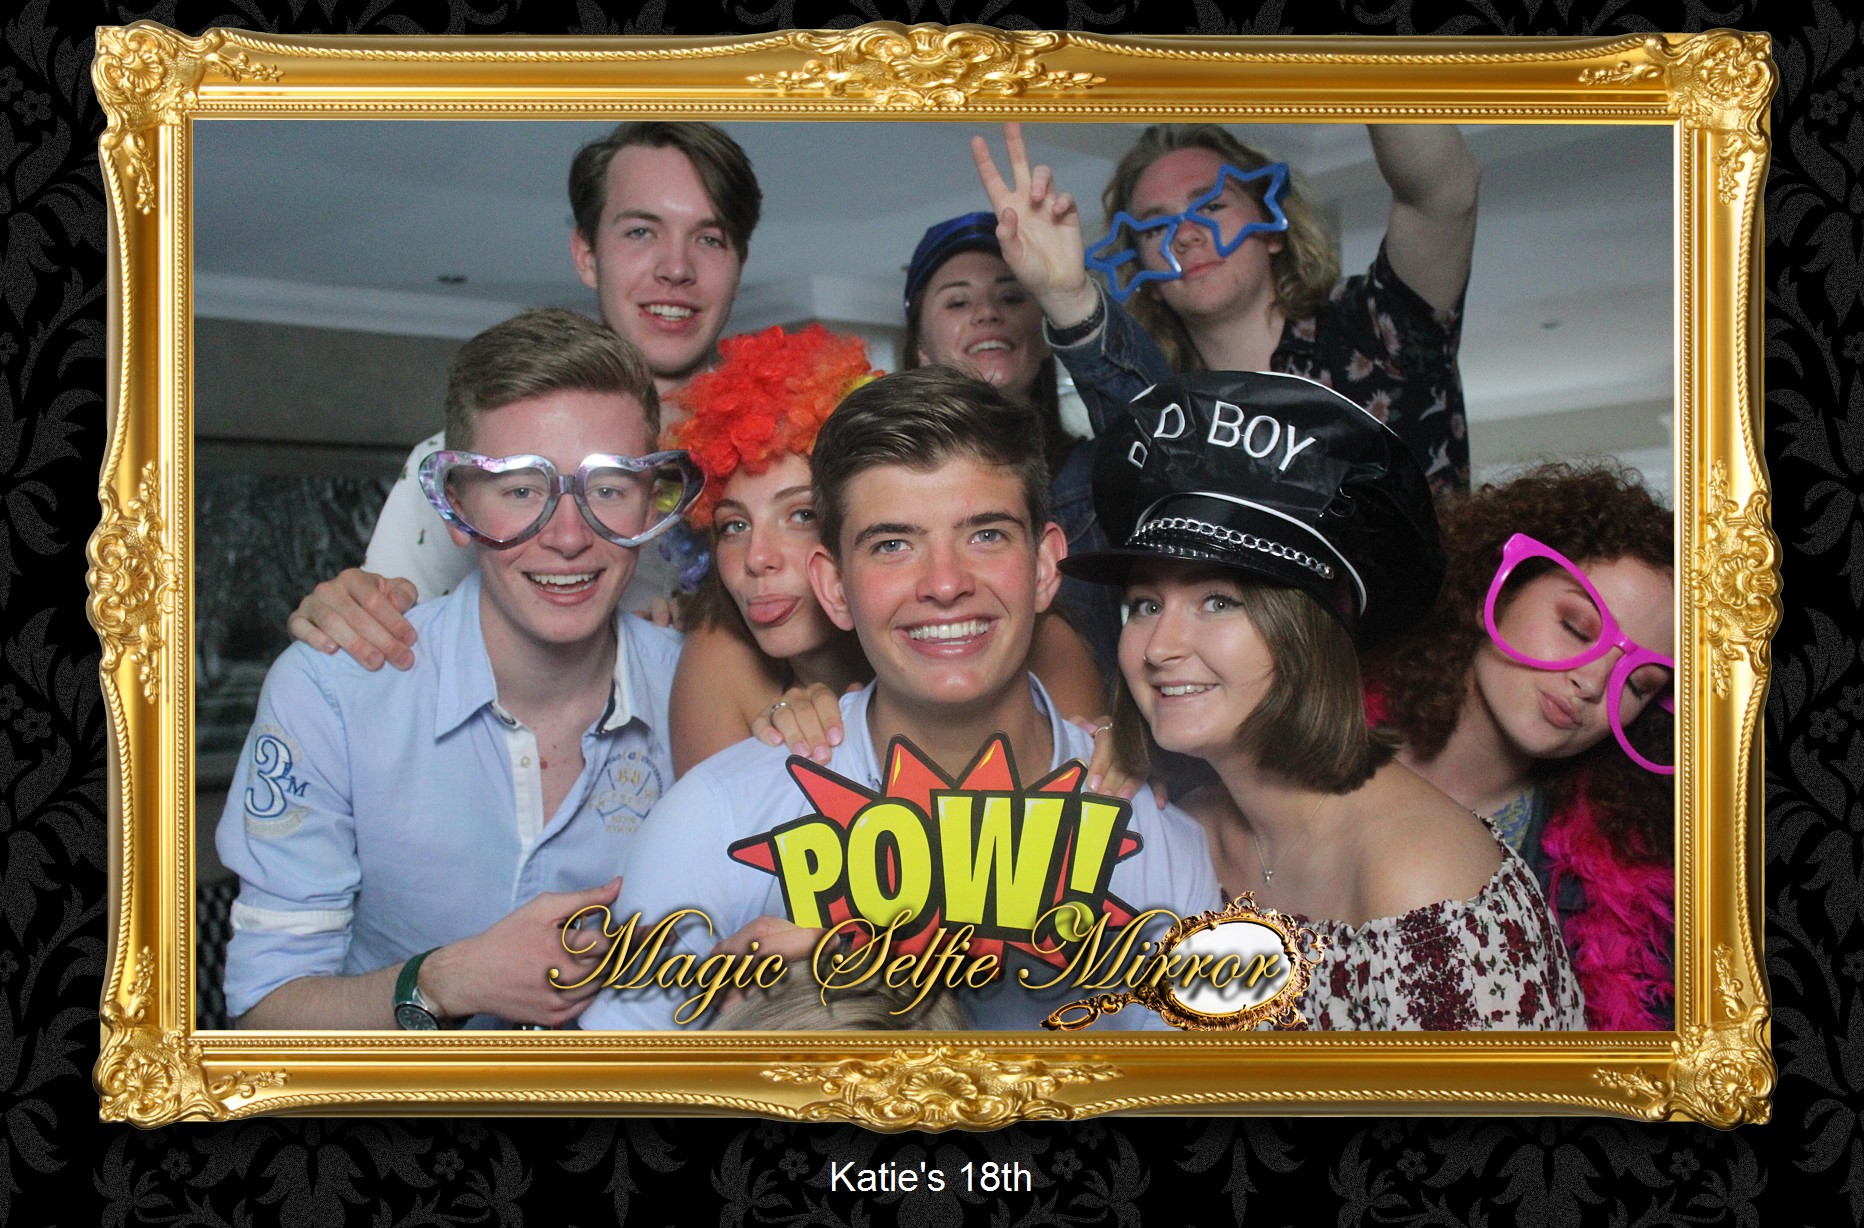 Selfie Mirror Photo Booth Hire In Colchester, Essex | London